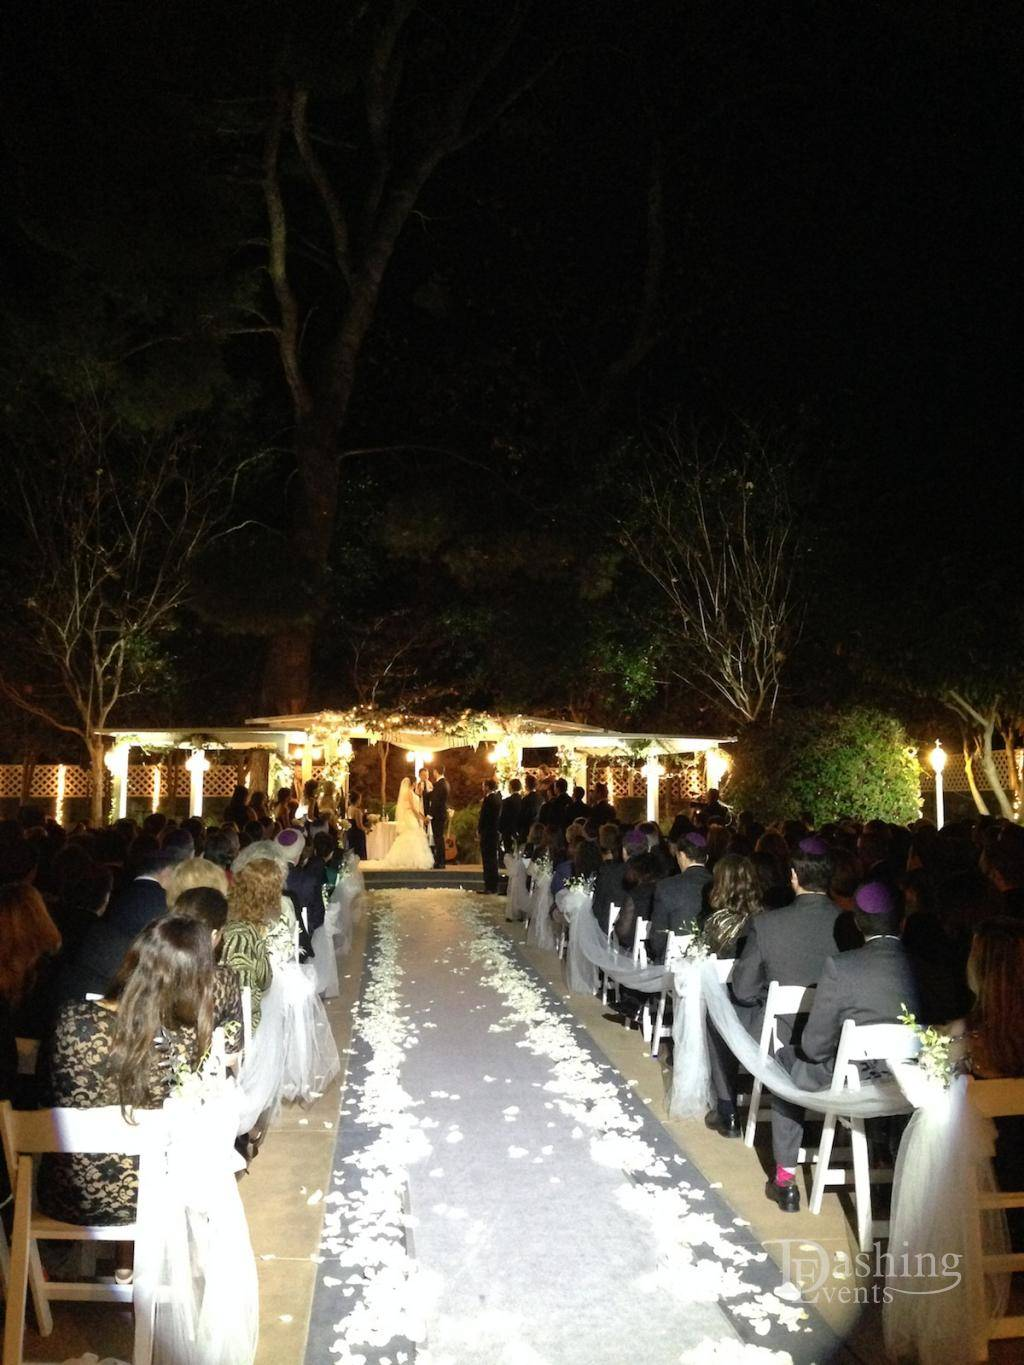 Event Diary: Decor Lighting for Charming Jewish Wedding